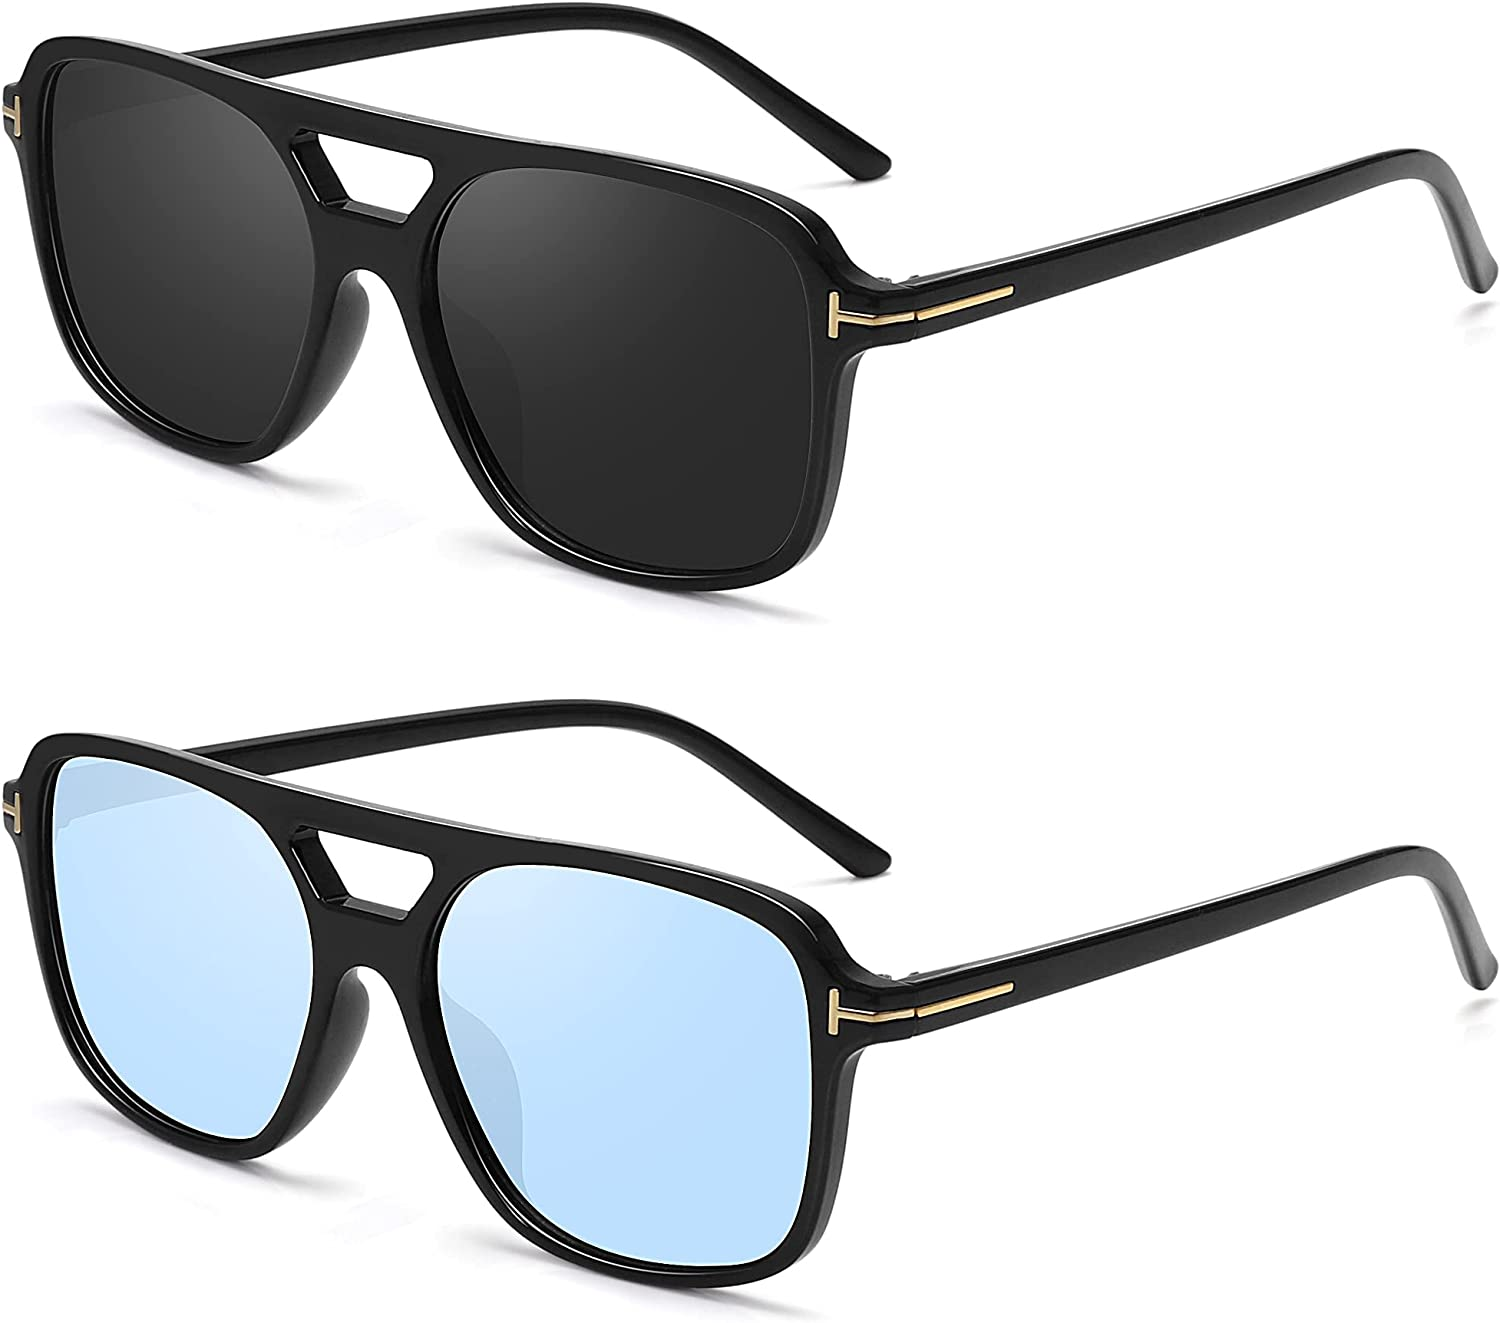 Max 67% OFF Outlet ☆ Free Shipping MEETSUN Vintage 70s Sunglasses for Large Women Men Aviator Retro